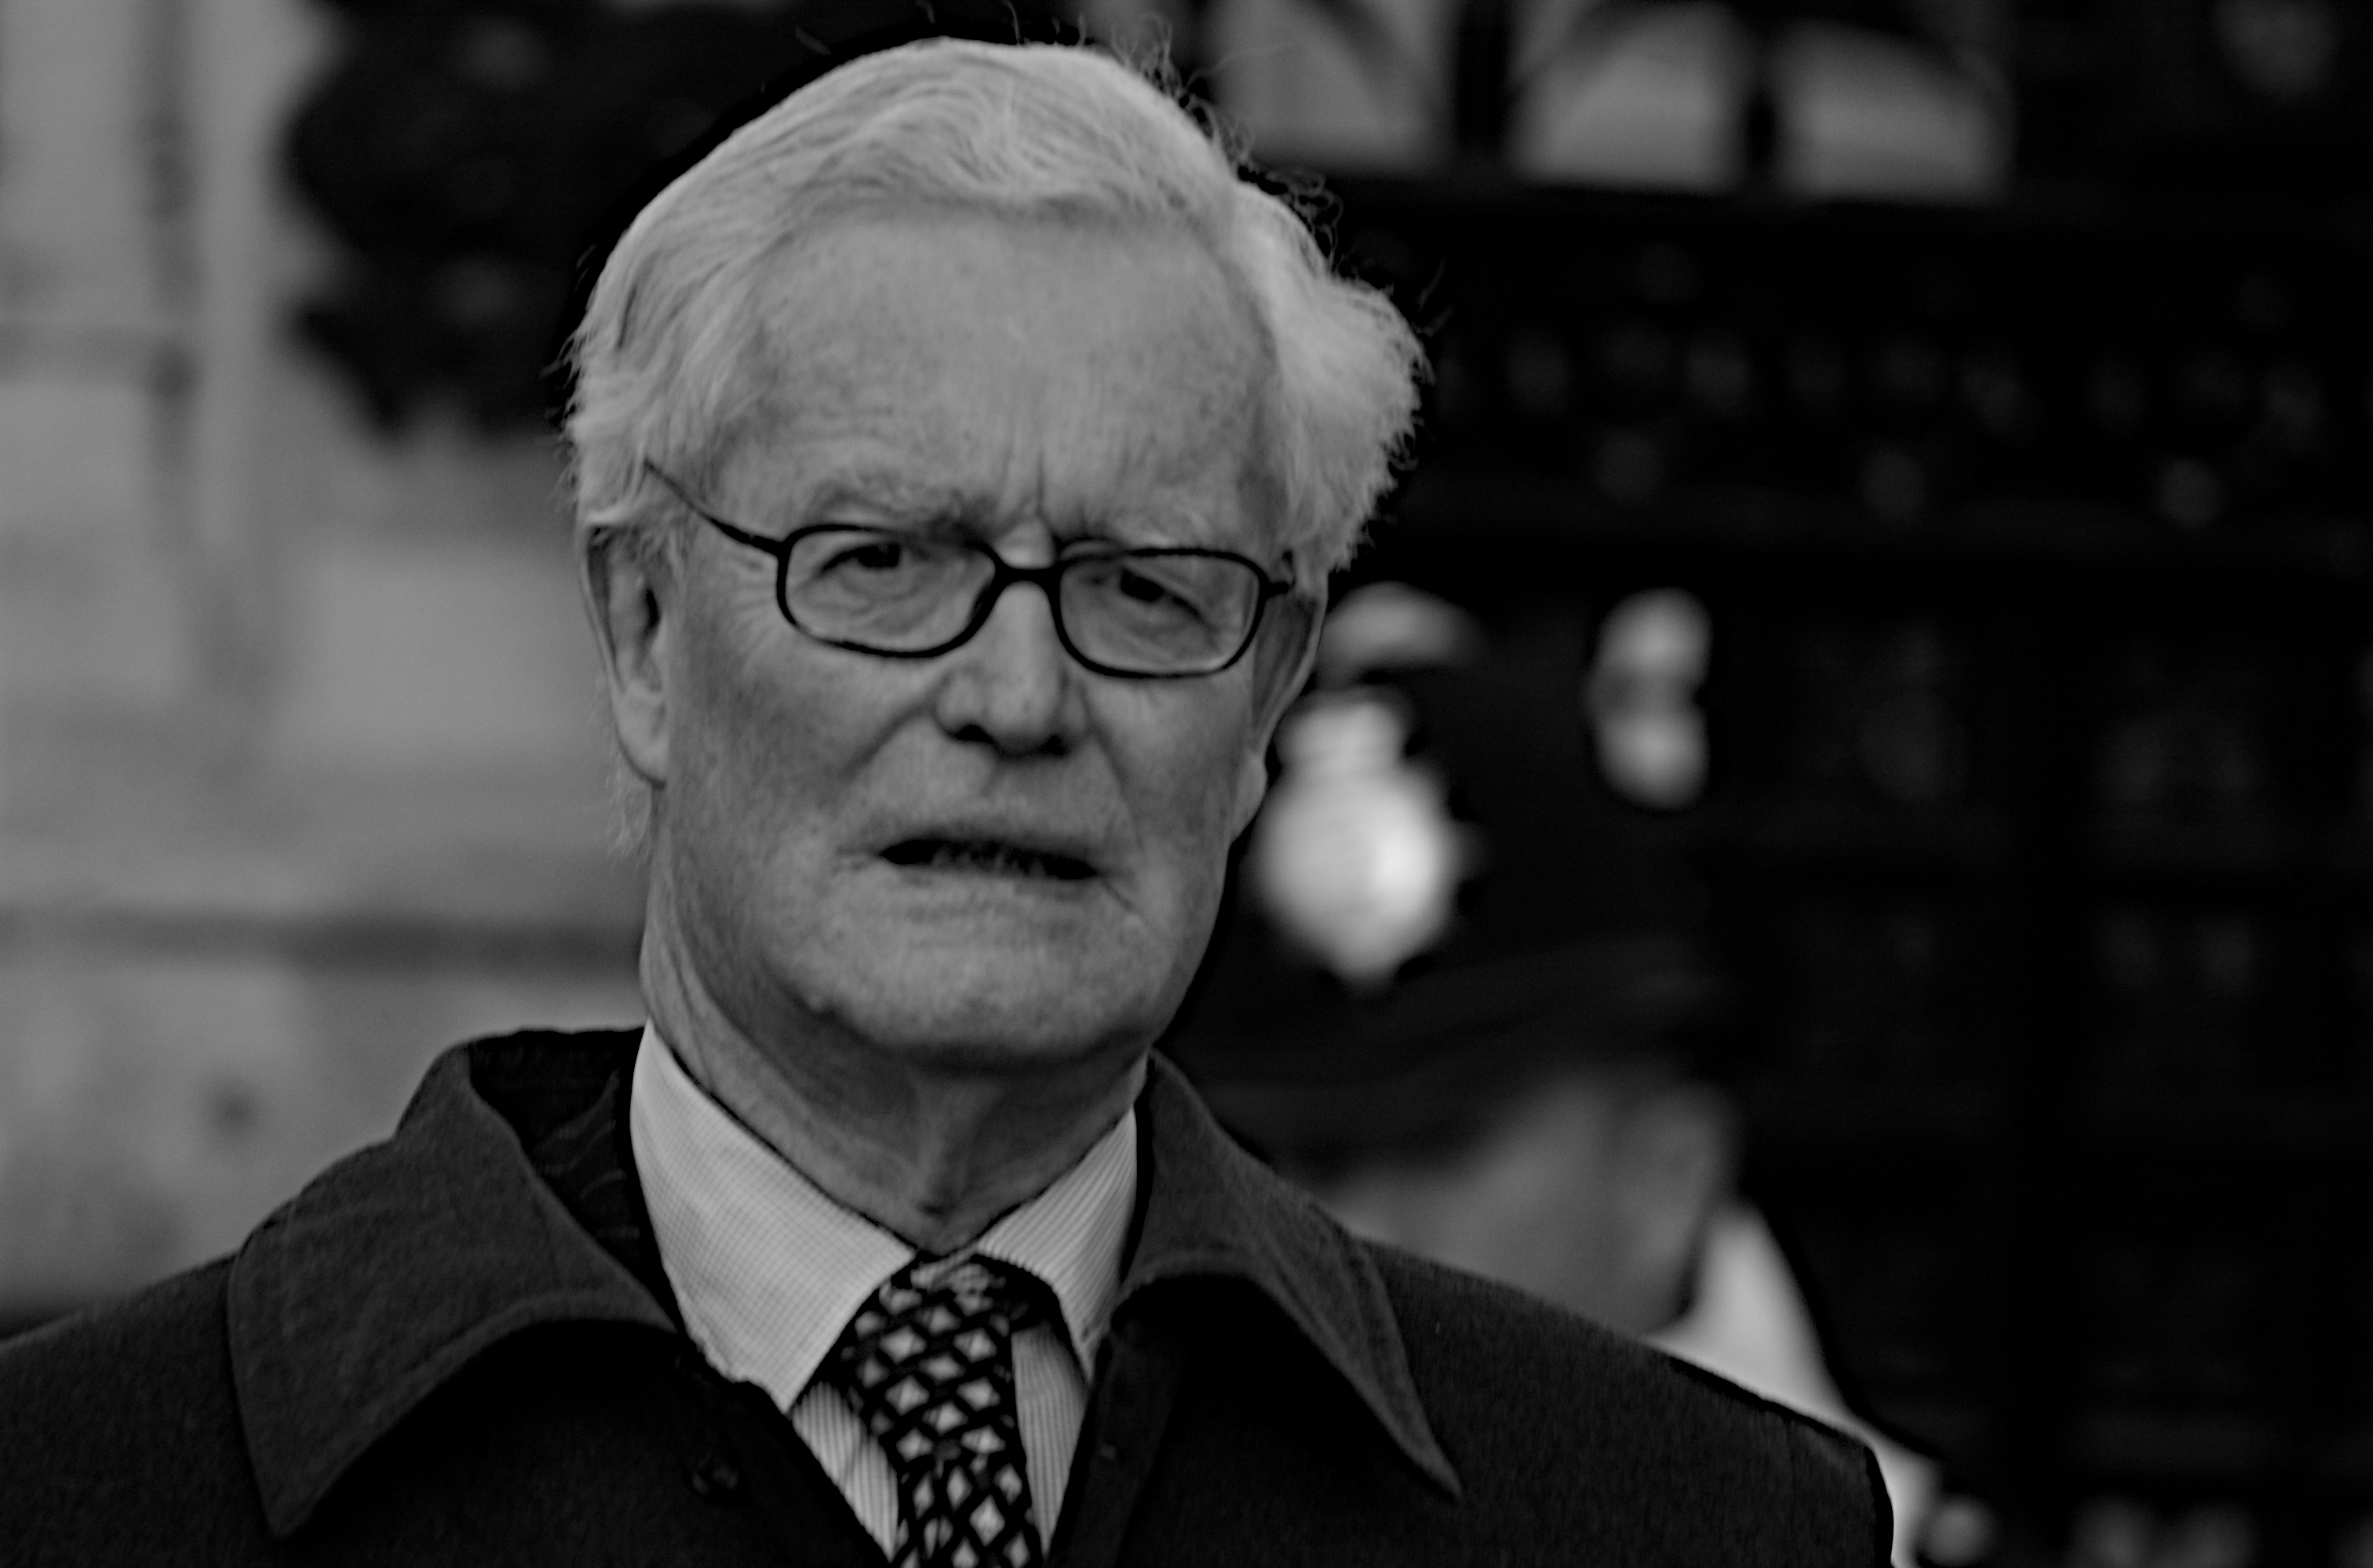 File:Douglas Hurd, November 2007.jpg - Wikipedia, the free ...